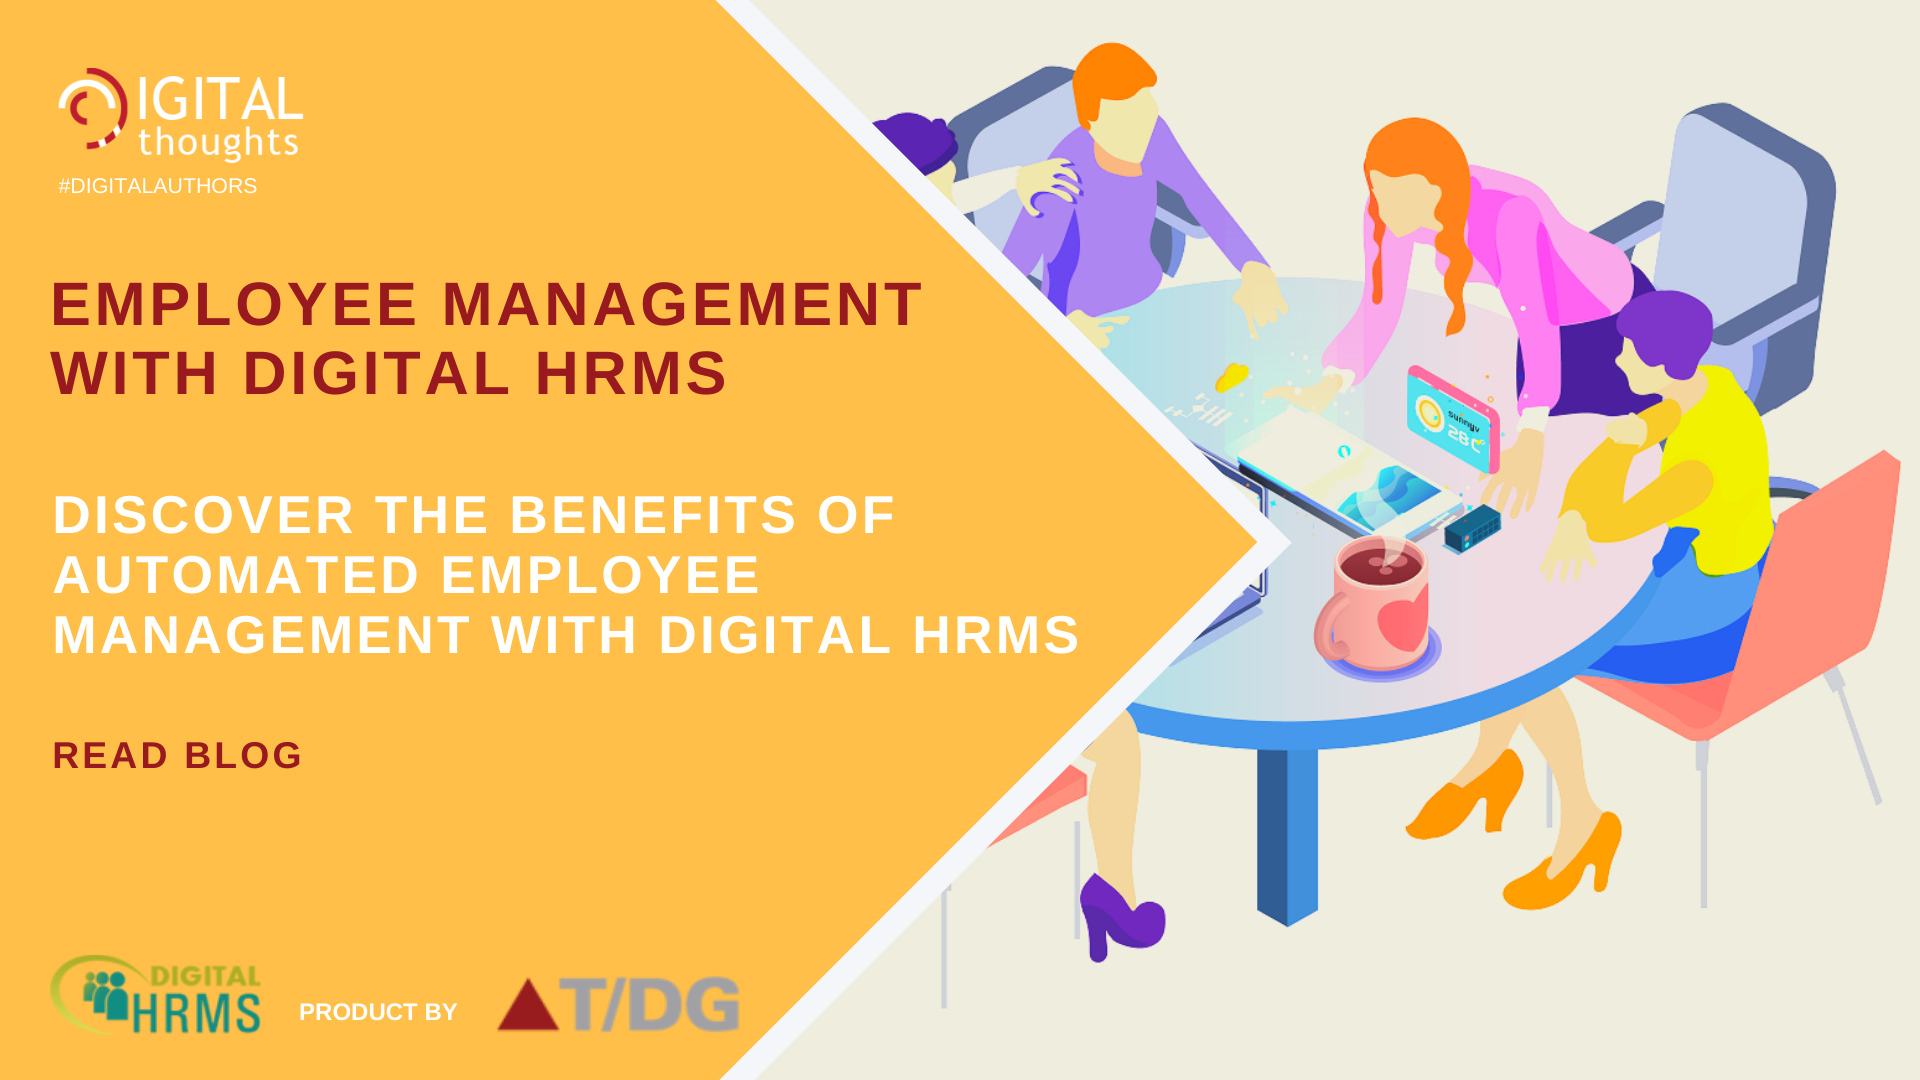 Employee Management with Digital HRMS: Exploring Benefits of an Employee Management Platform